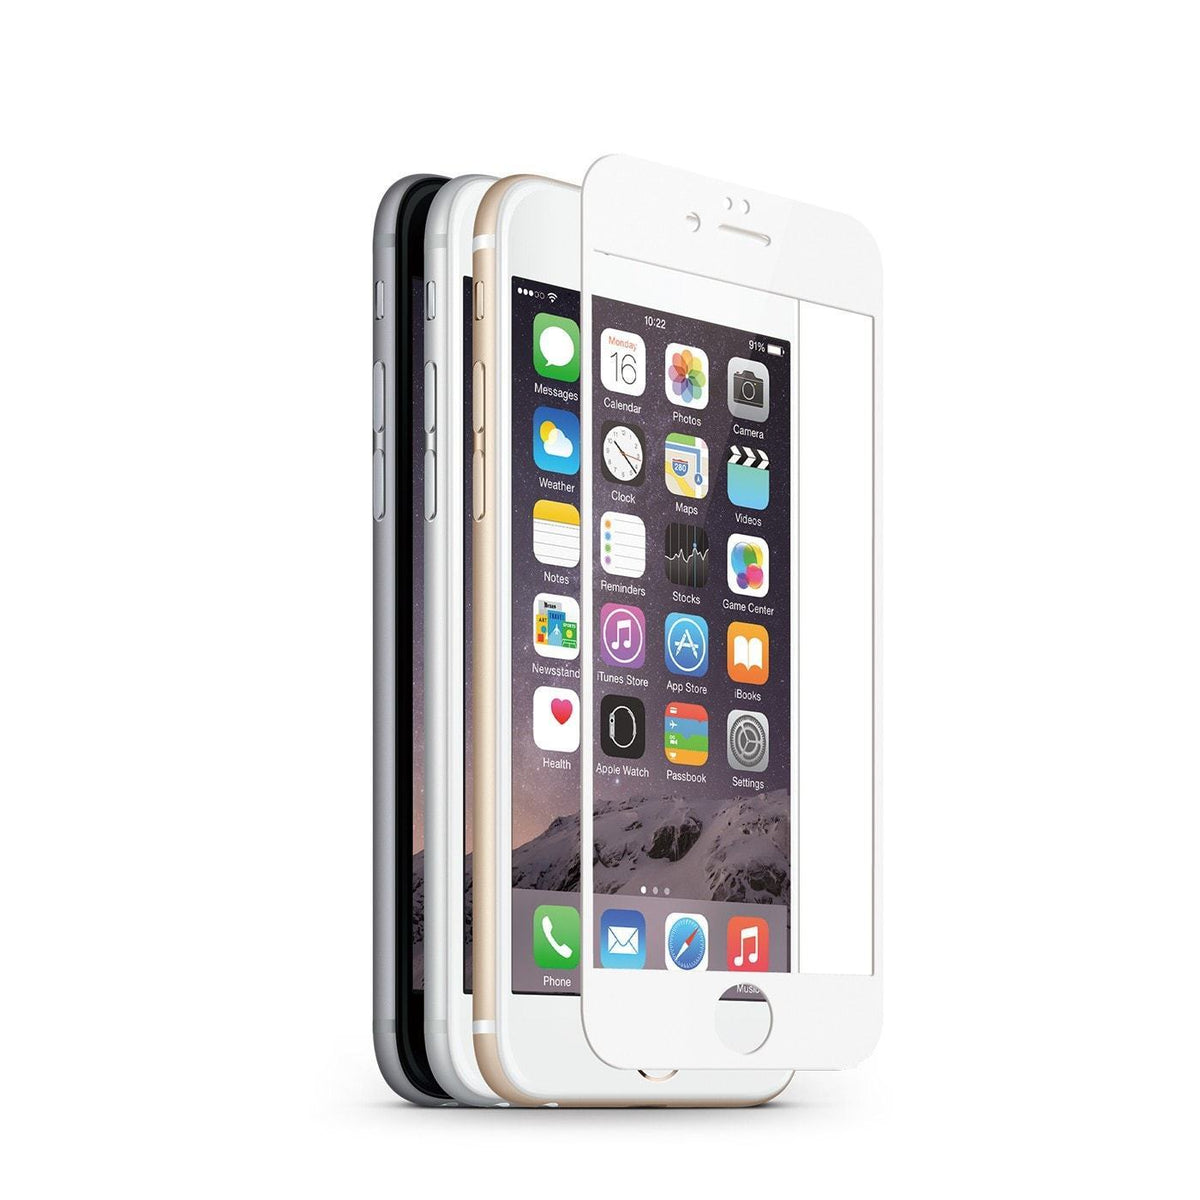 JCPal Screen Protector Preserver Classic Glass Screen Protector for iPhone 6 and 6 Plus iPhone 6 / 0.33mm / White